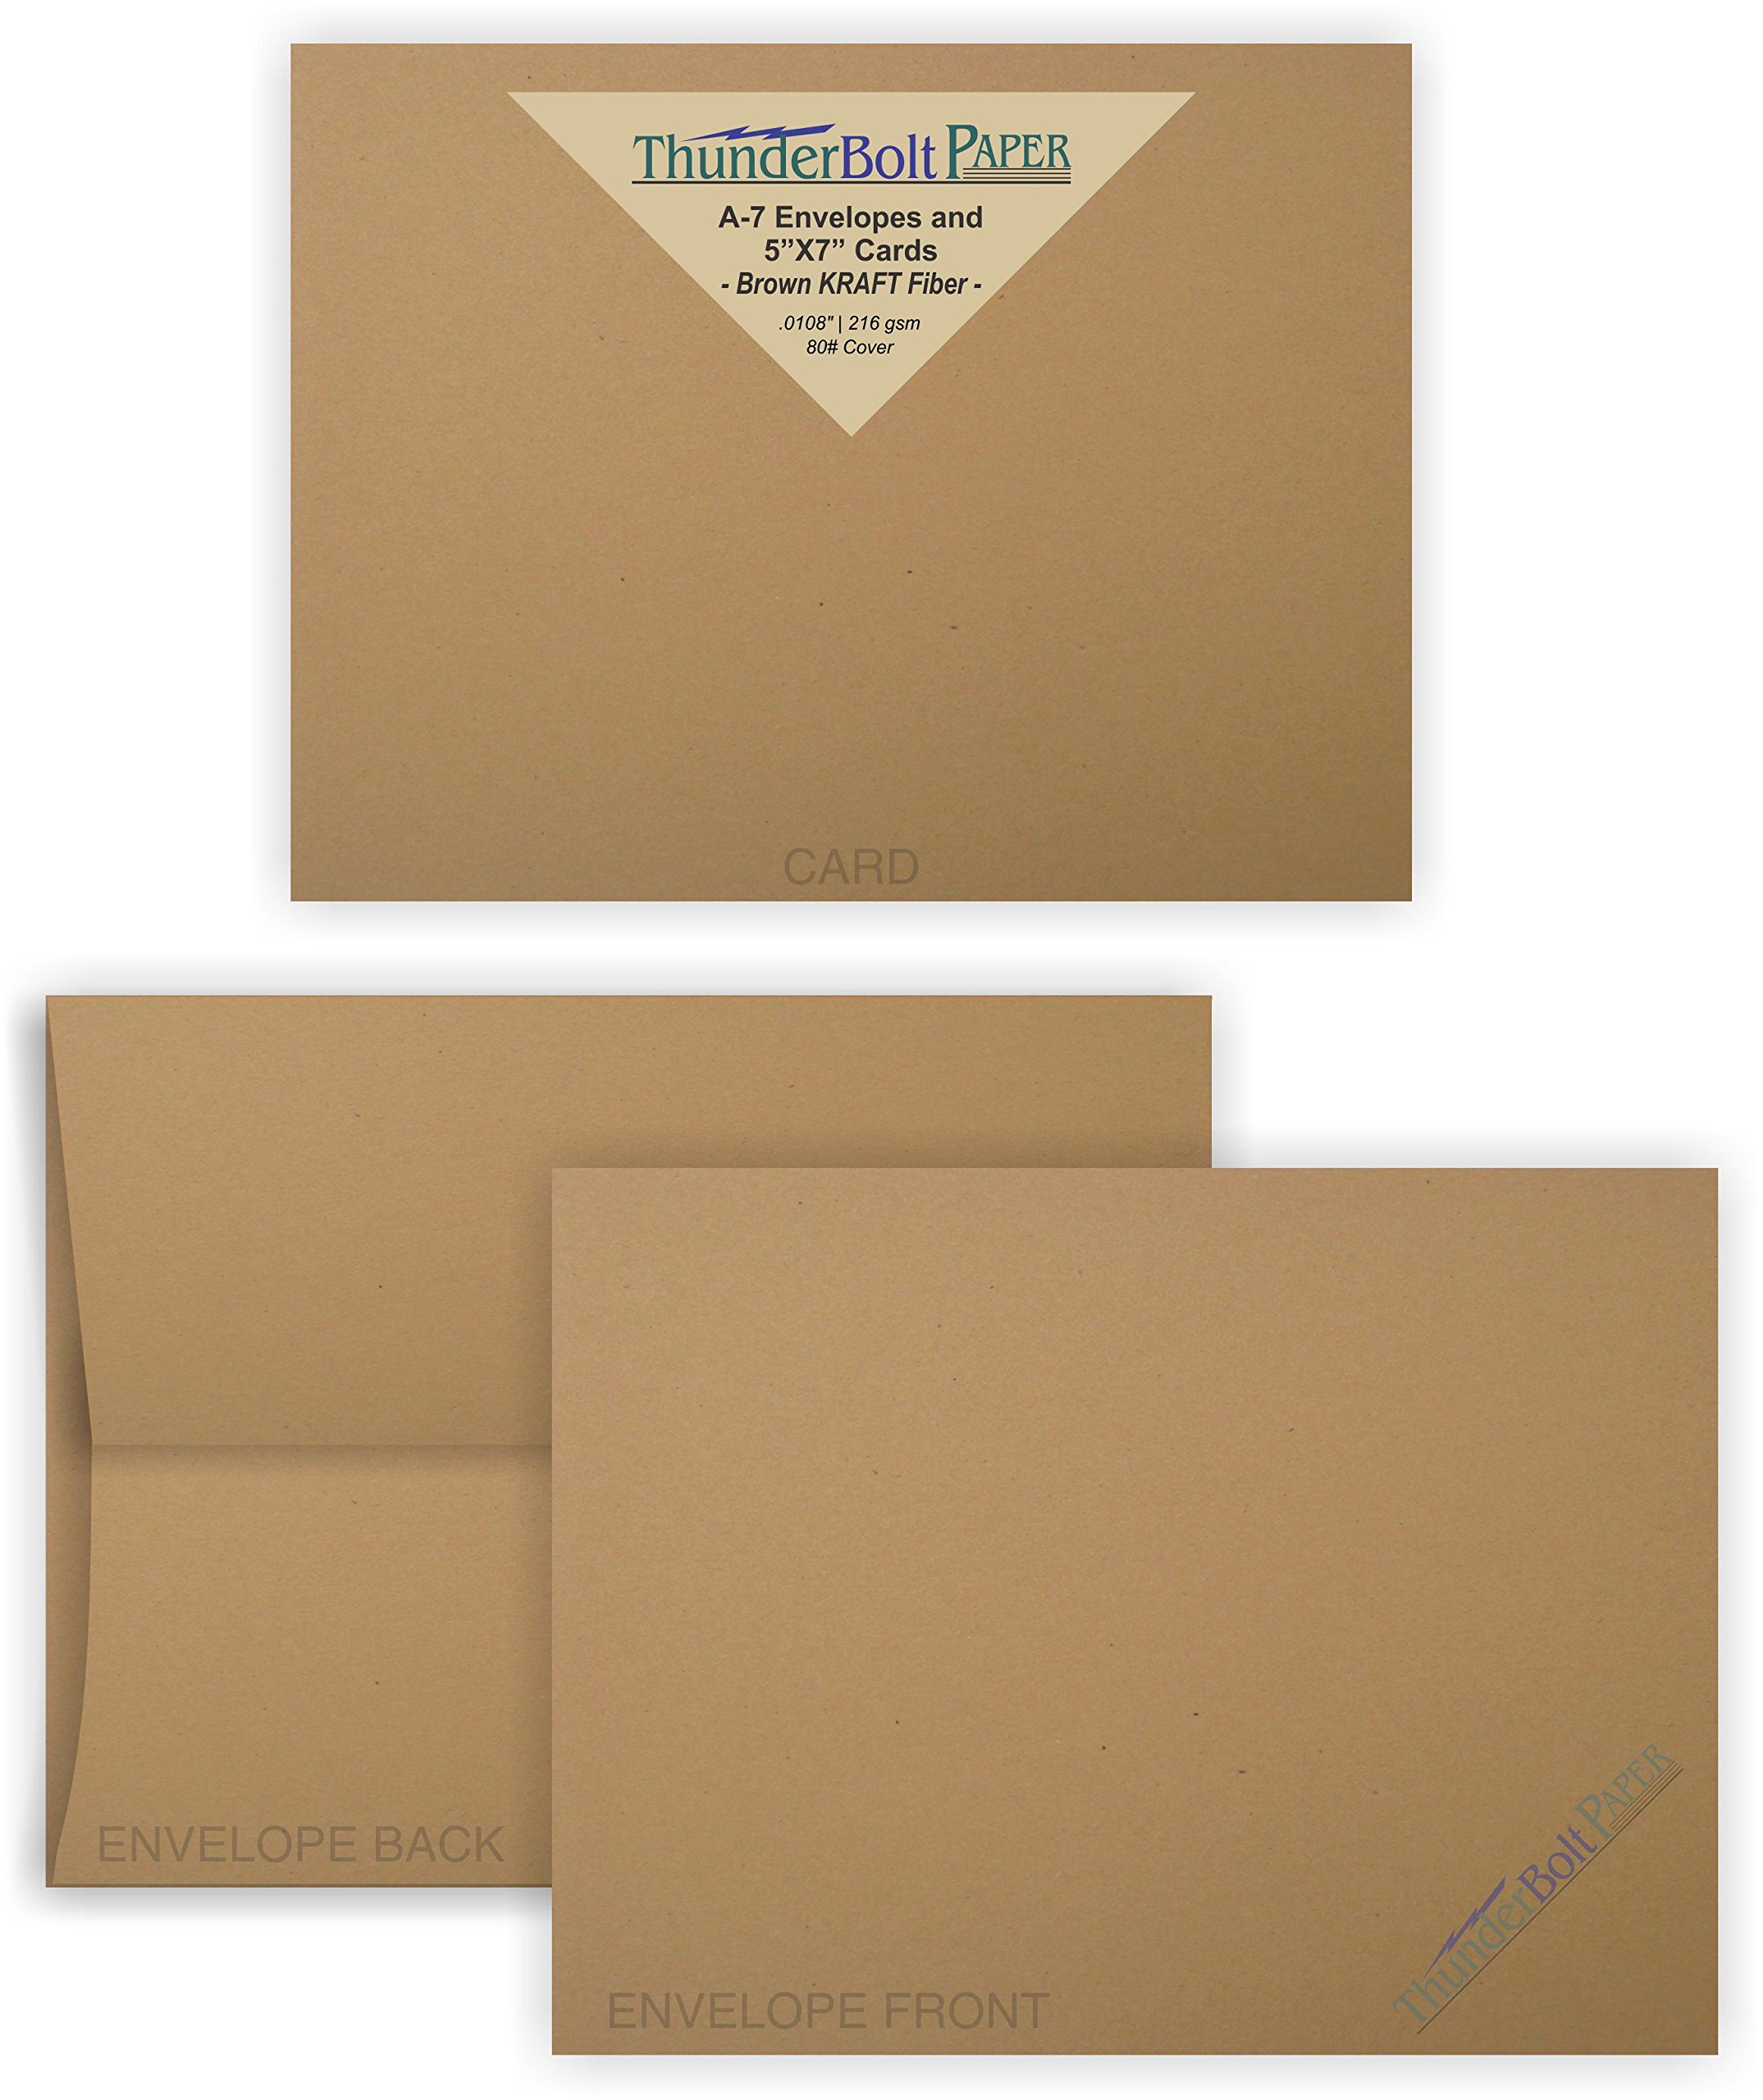 5X7 Blank Cards with A-7 Envelopes - Brown Kraft Fiber - 15 Sets - Matching Pack - Invitations, Greeting, Thank Yous, Notes, Holidays, Weddings, Birthdays, Announcements - 80# Cardstock